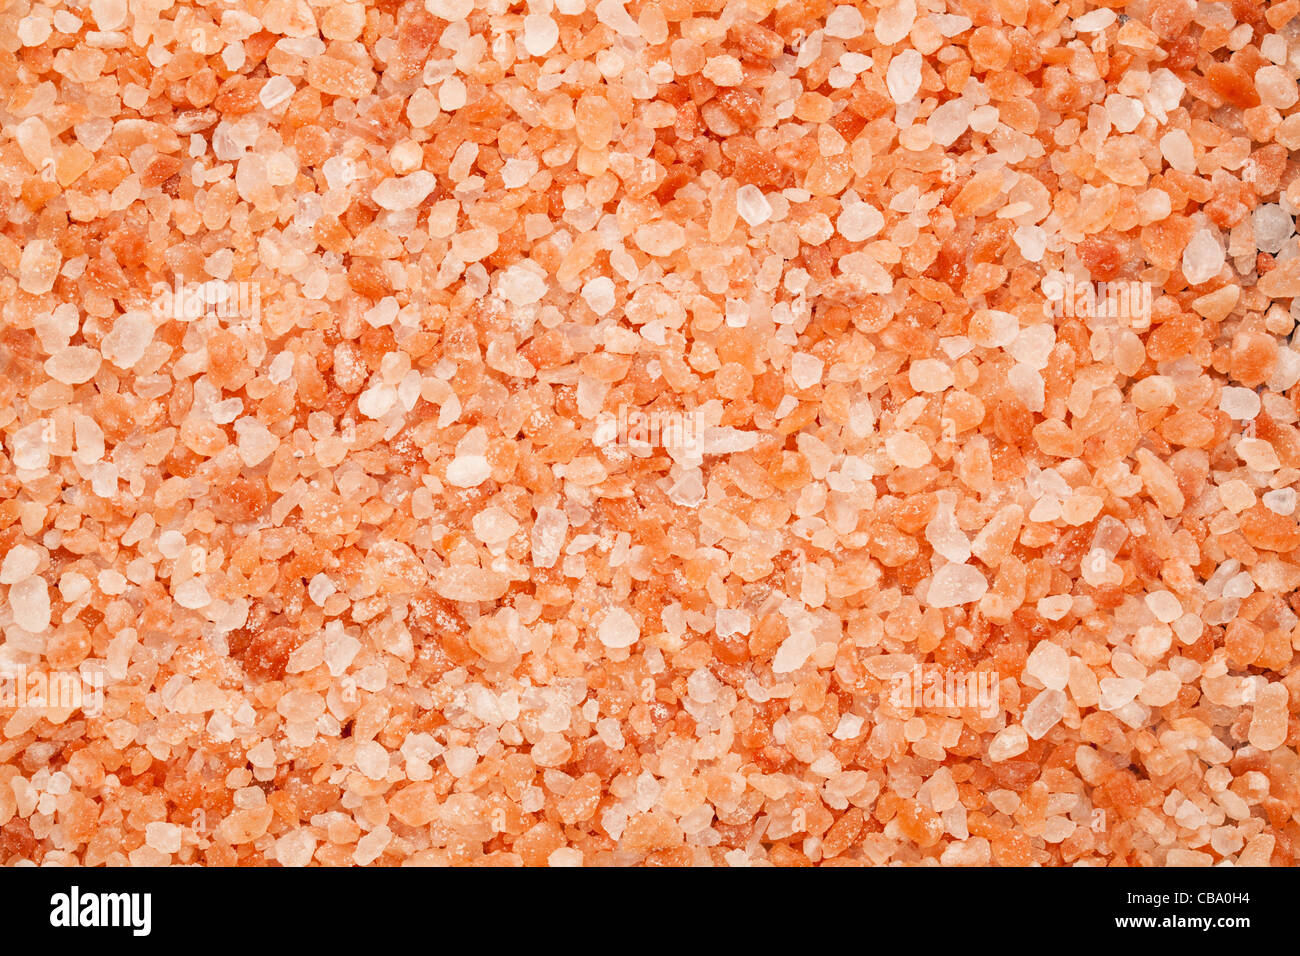 background of Himalayan rock salt - pink and orange coarse crystals - Stock Image